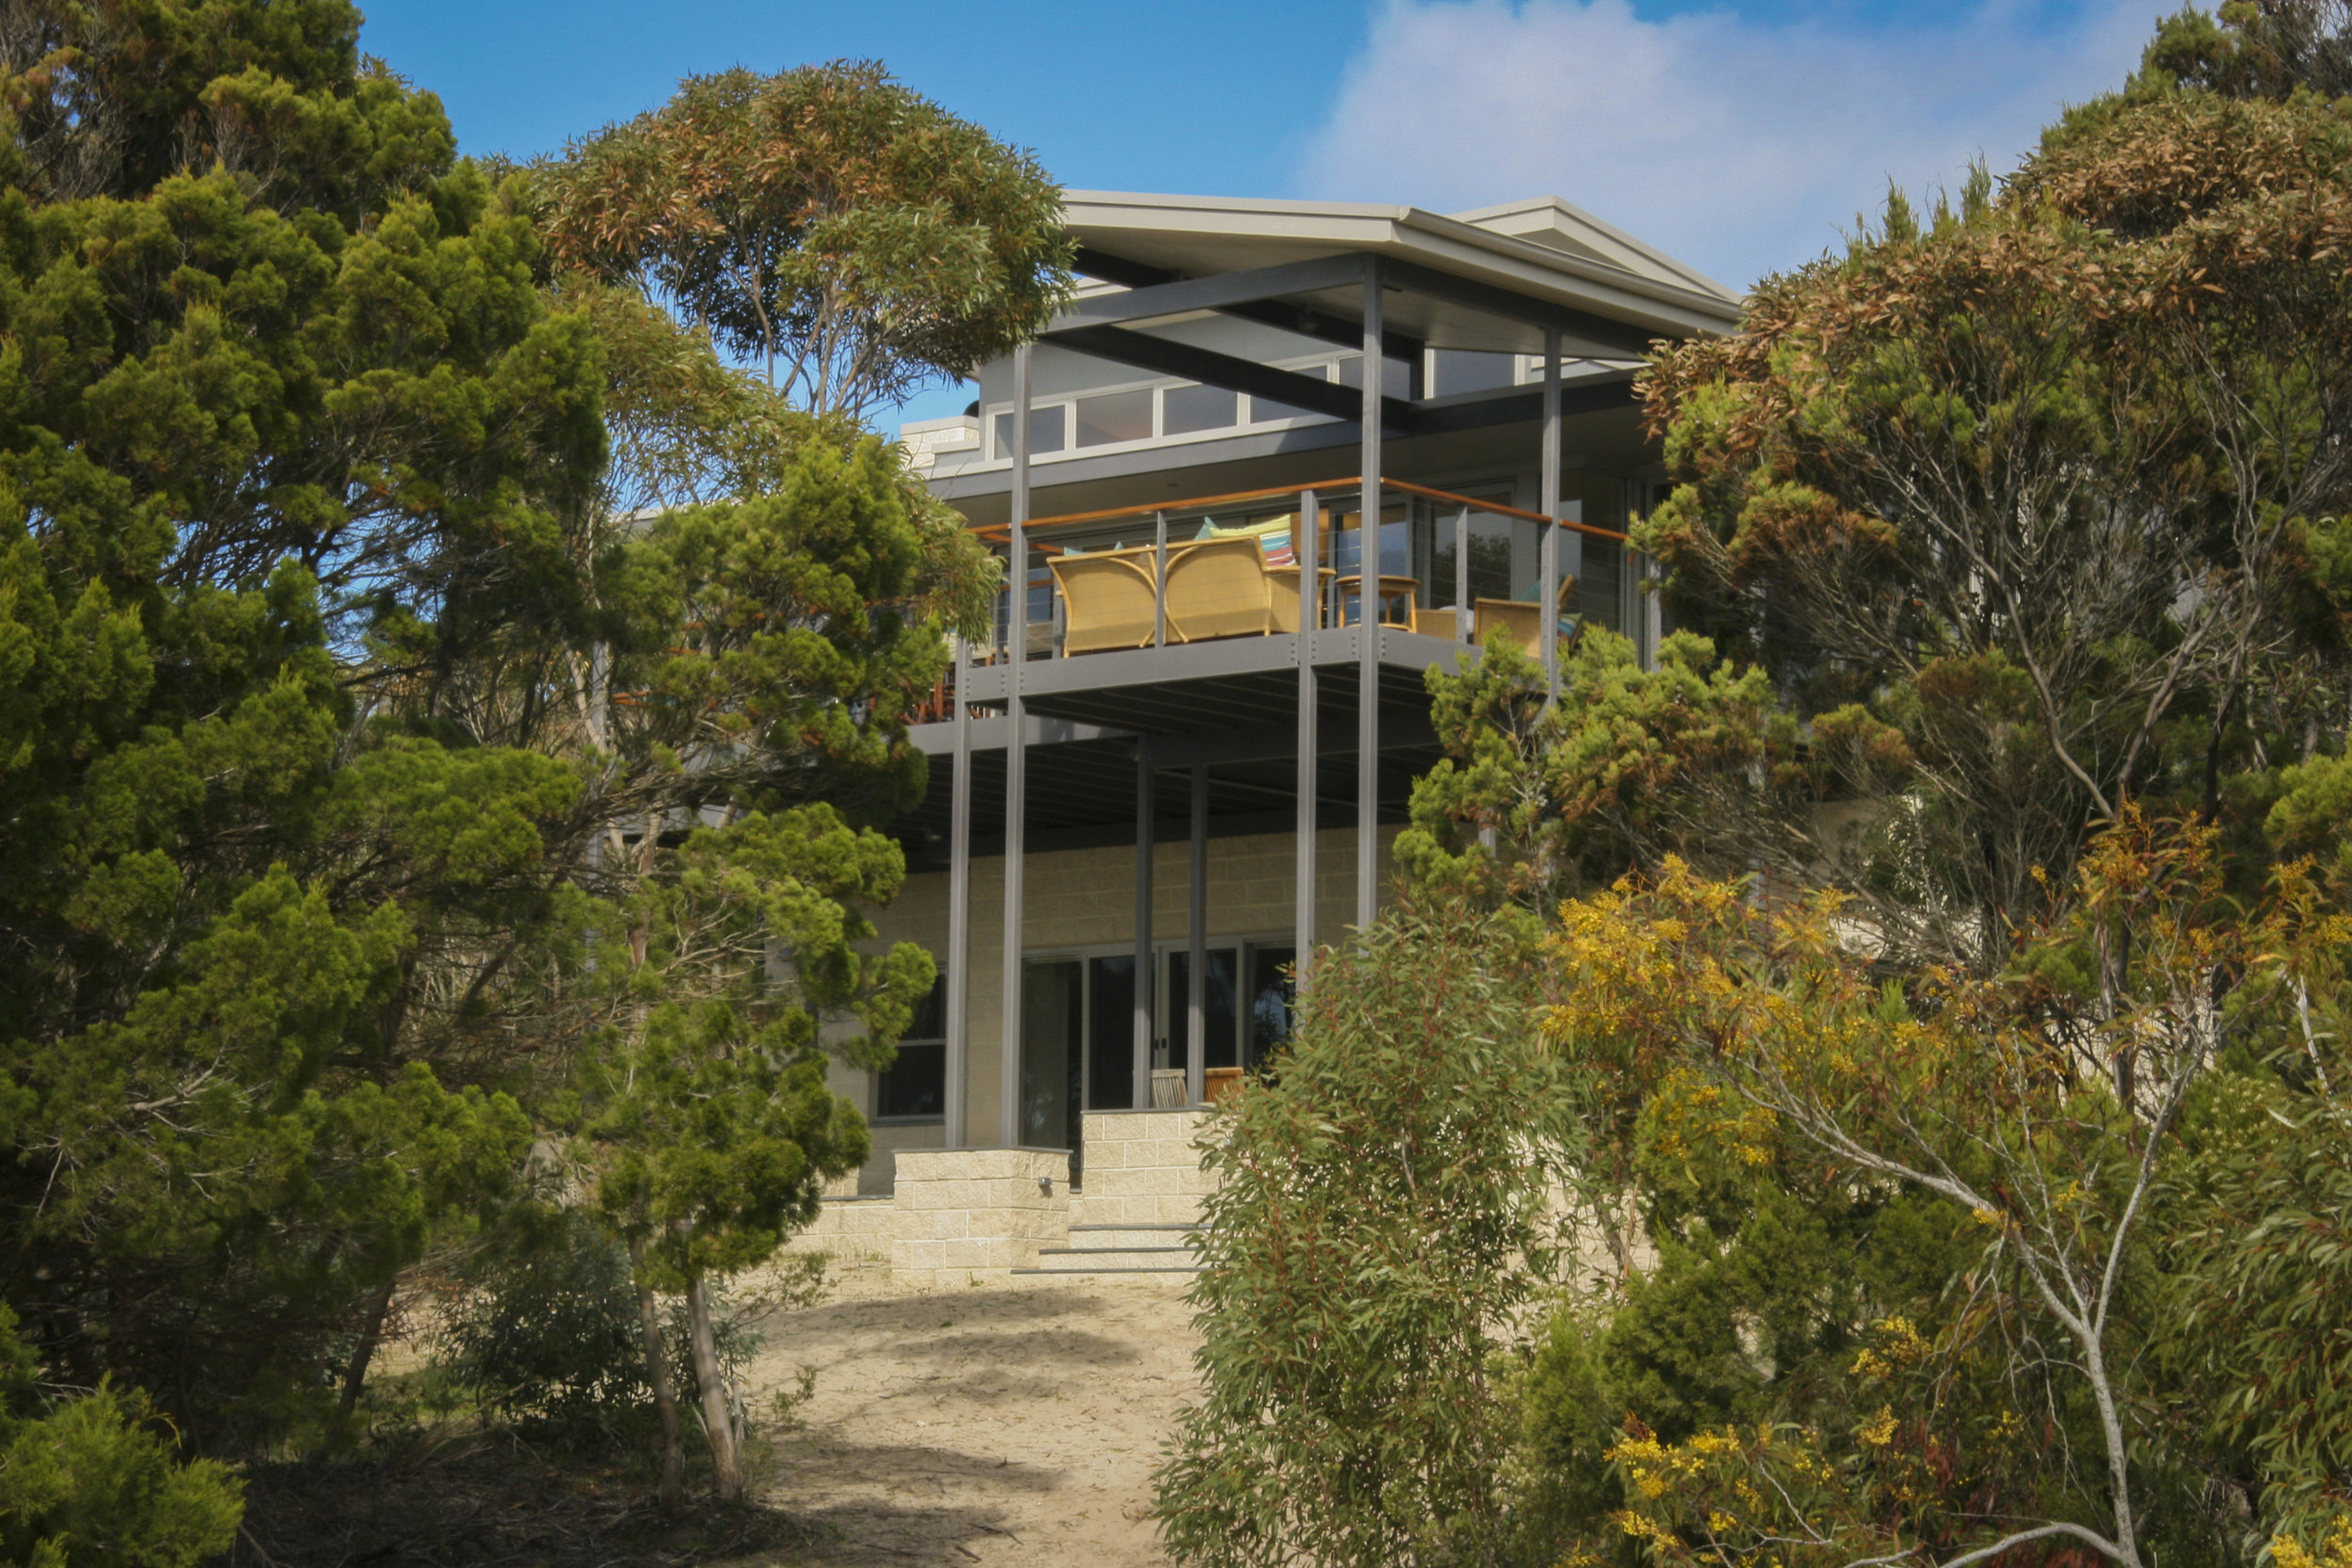 A picturesque wilderness to explore  - Situated in protected Eastern Cove, on the Northern coast of Kangaroo Isand, DeCoudie Beach house provides an inviting oasis for all to enjoy.Map